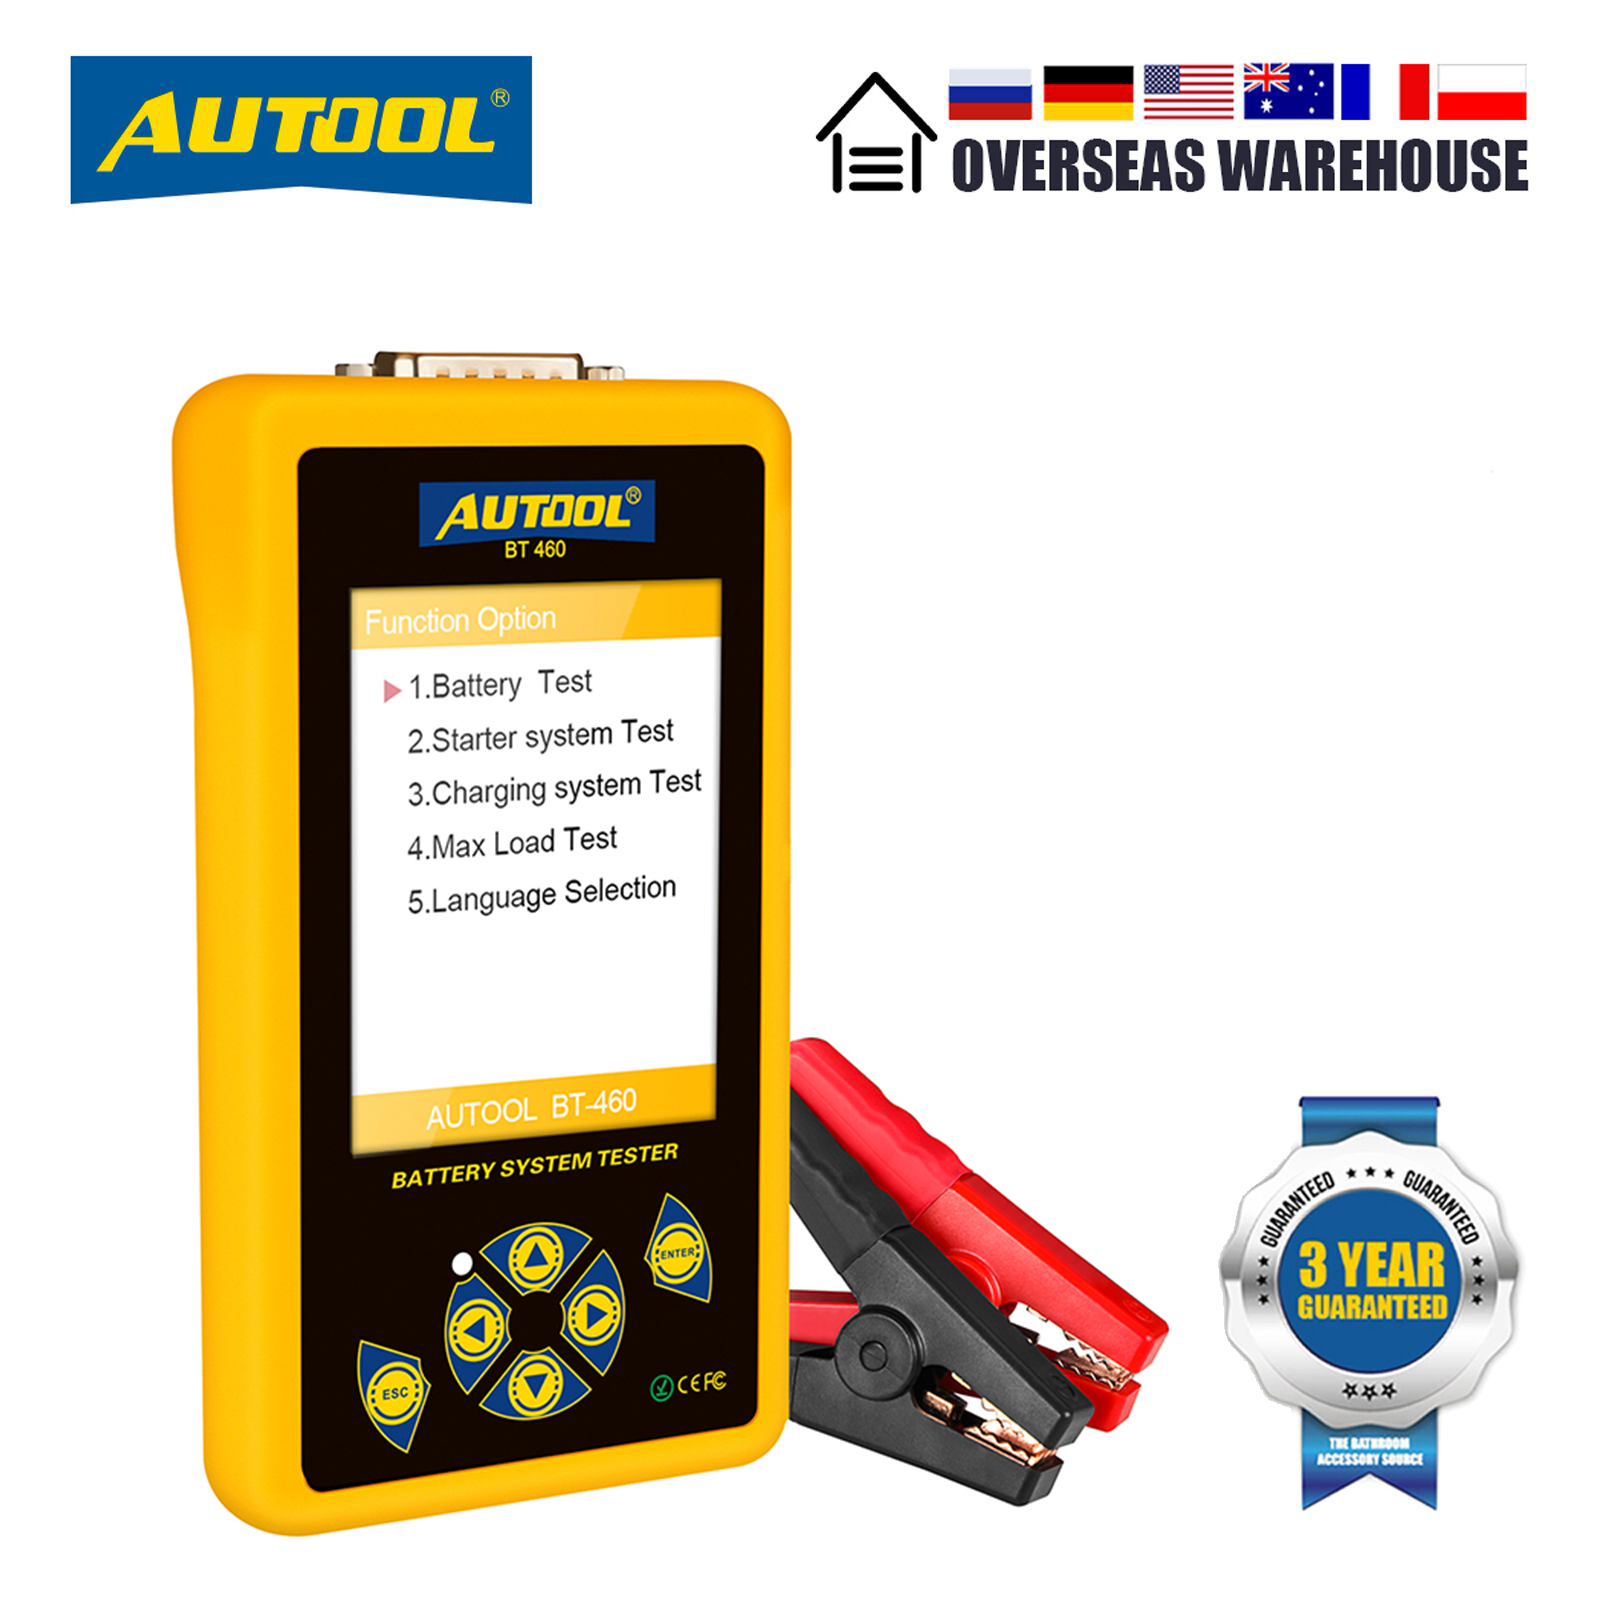 AUTOOL BT460 Car Battery Tester 12V 24V Automotive Batteries Analysis Meter Car Quick Cranking Charging Diagnostic Tool PK KW600